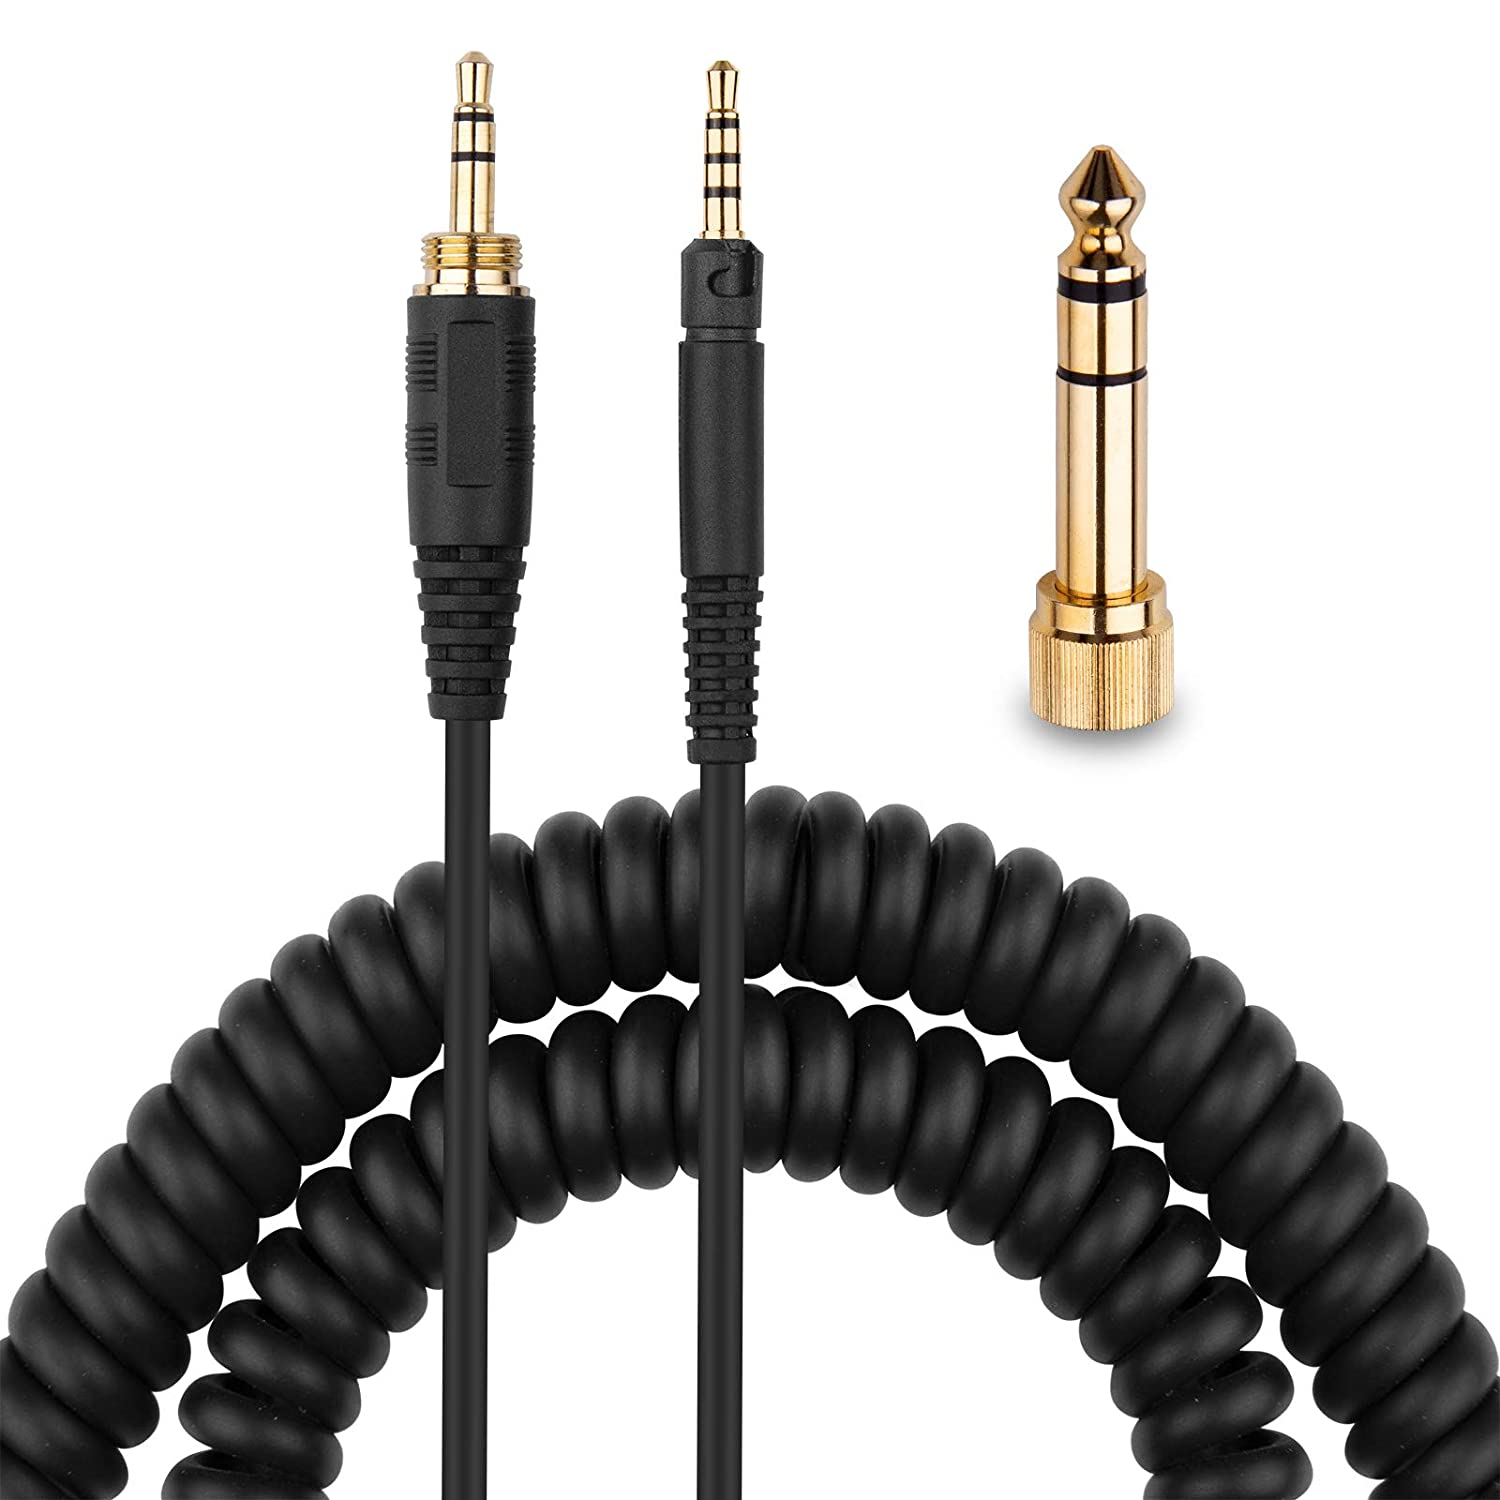 KetDirect Replacement Audio Cable Upgrade Headphone Cord with Lock Connector for Sennheiser HD558 HD579 Headphones 1.2meters//4feet HD518 HD598 Cs HD599 HD569 HD598 SE HD598 HD598 SR